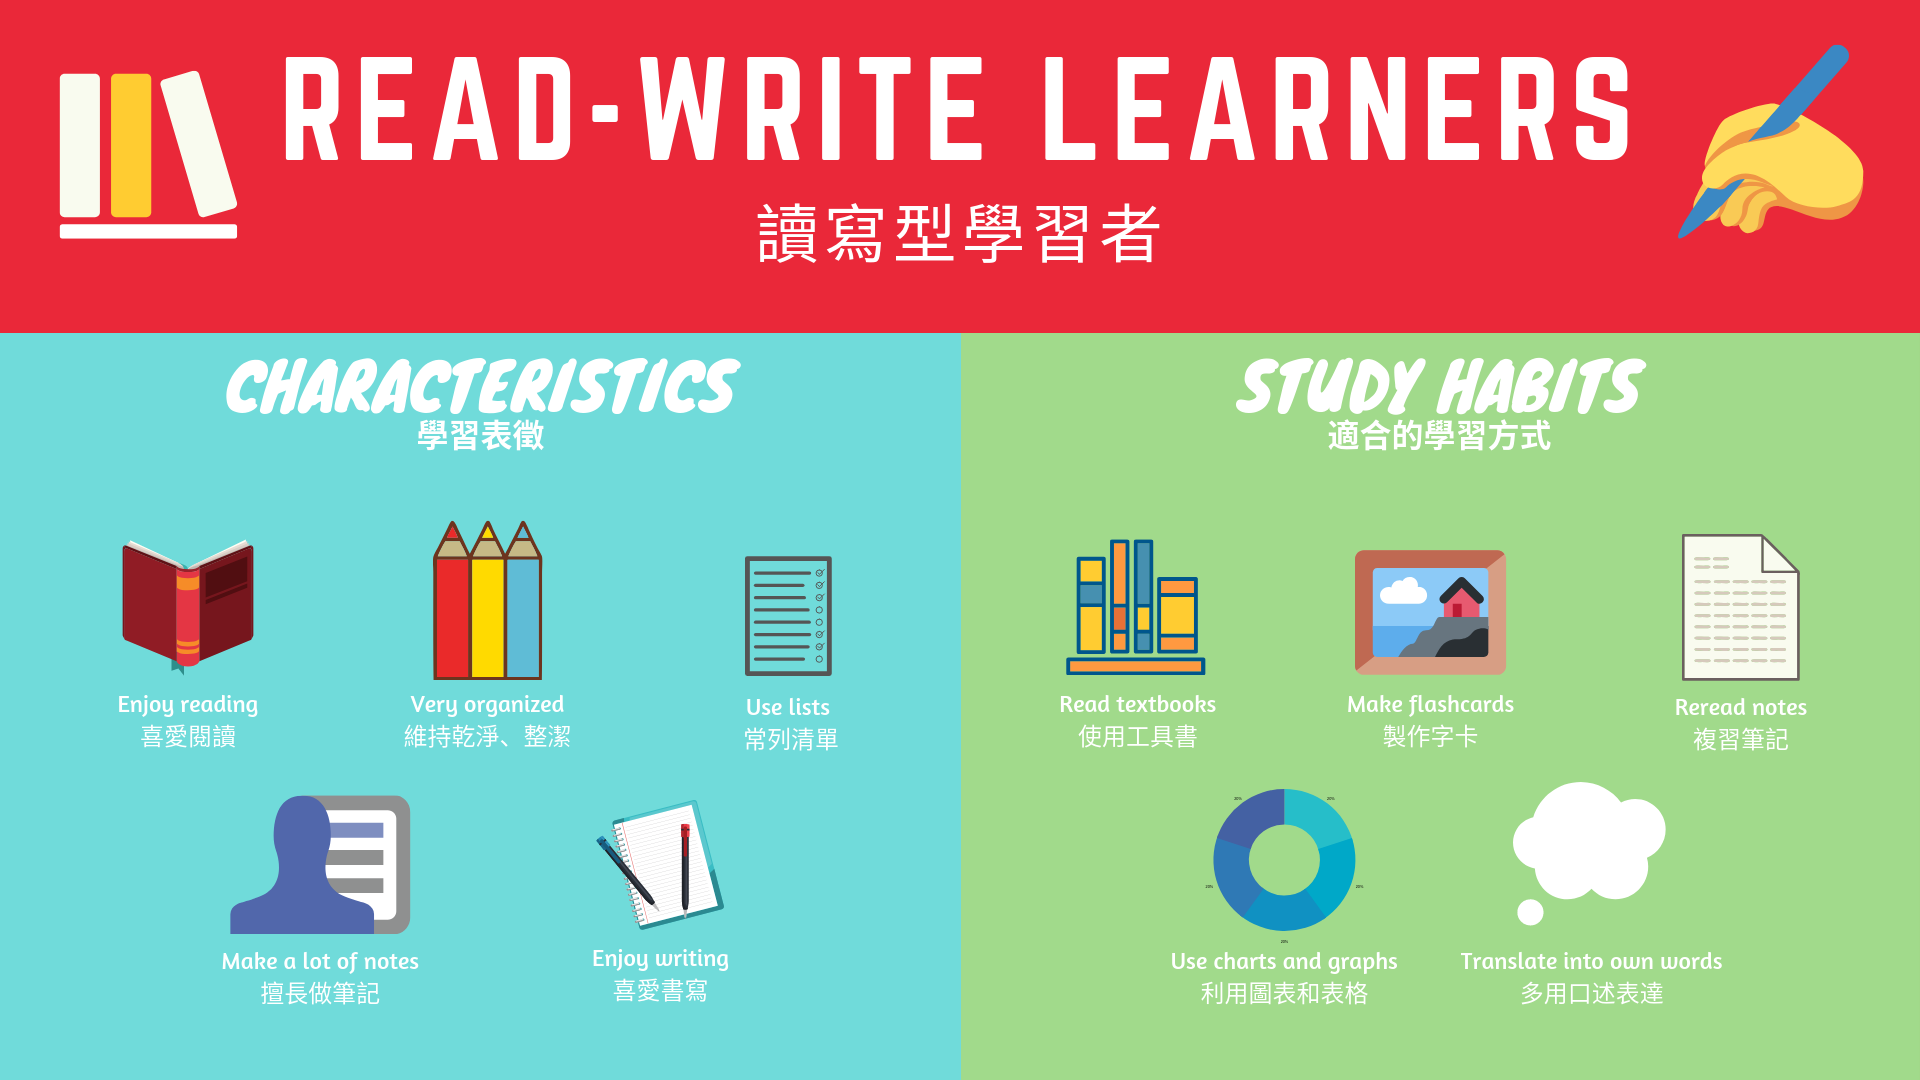 Read-Write Learners (2).png